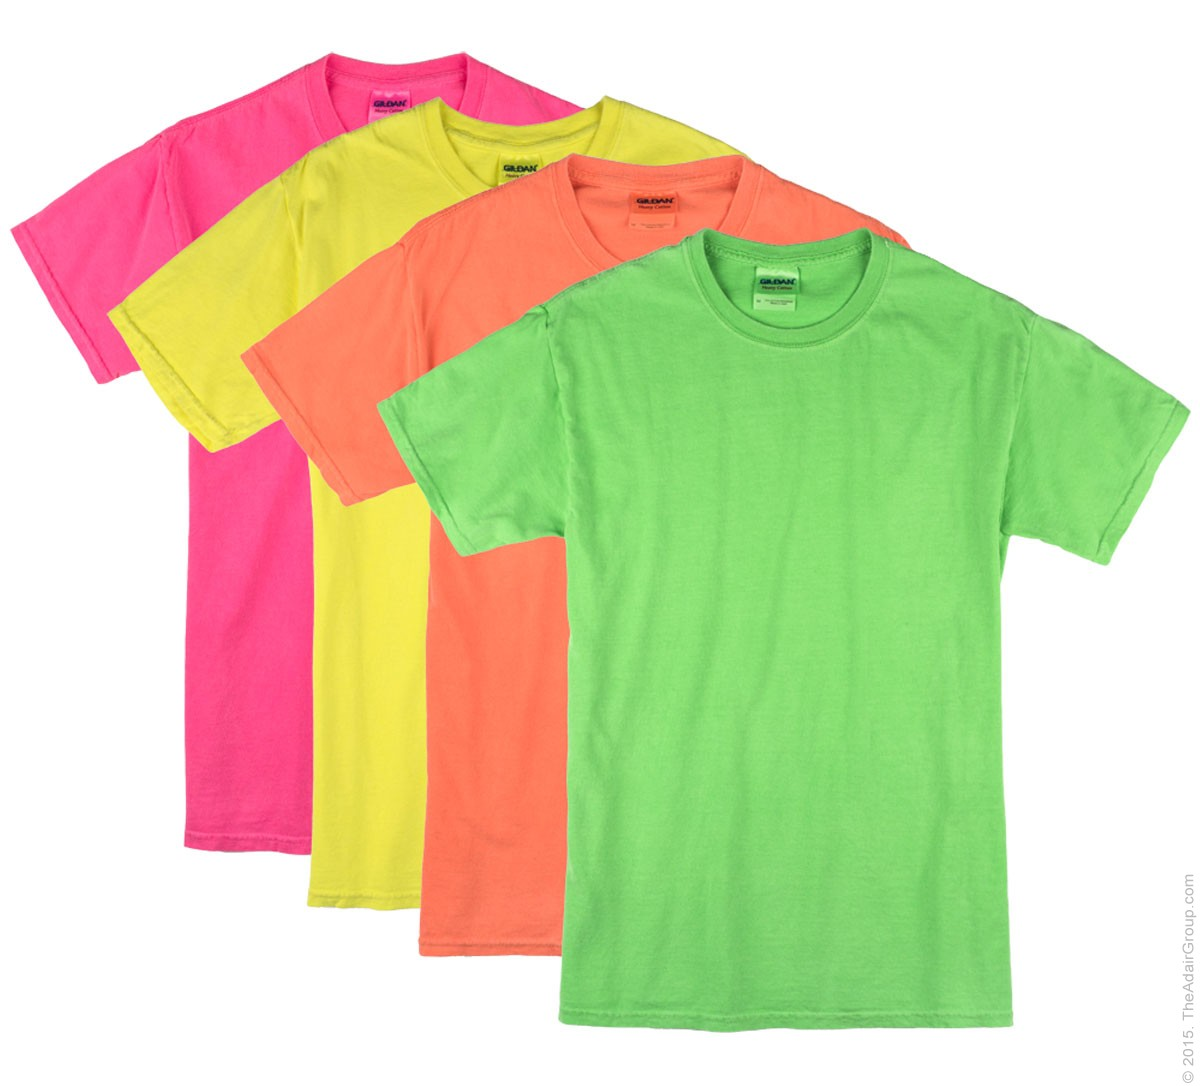 Neon t shirts greek t shirts for Bulk neon t shirts